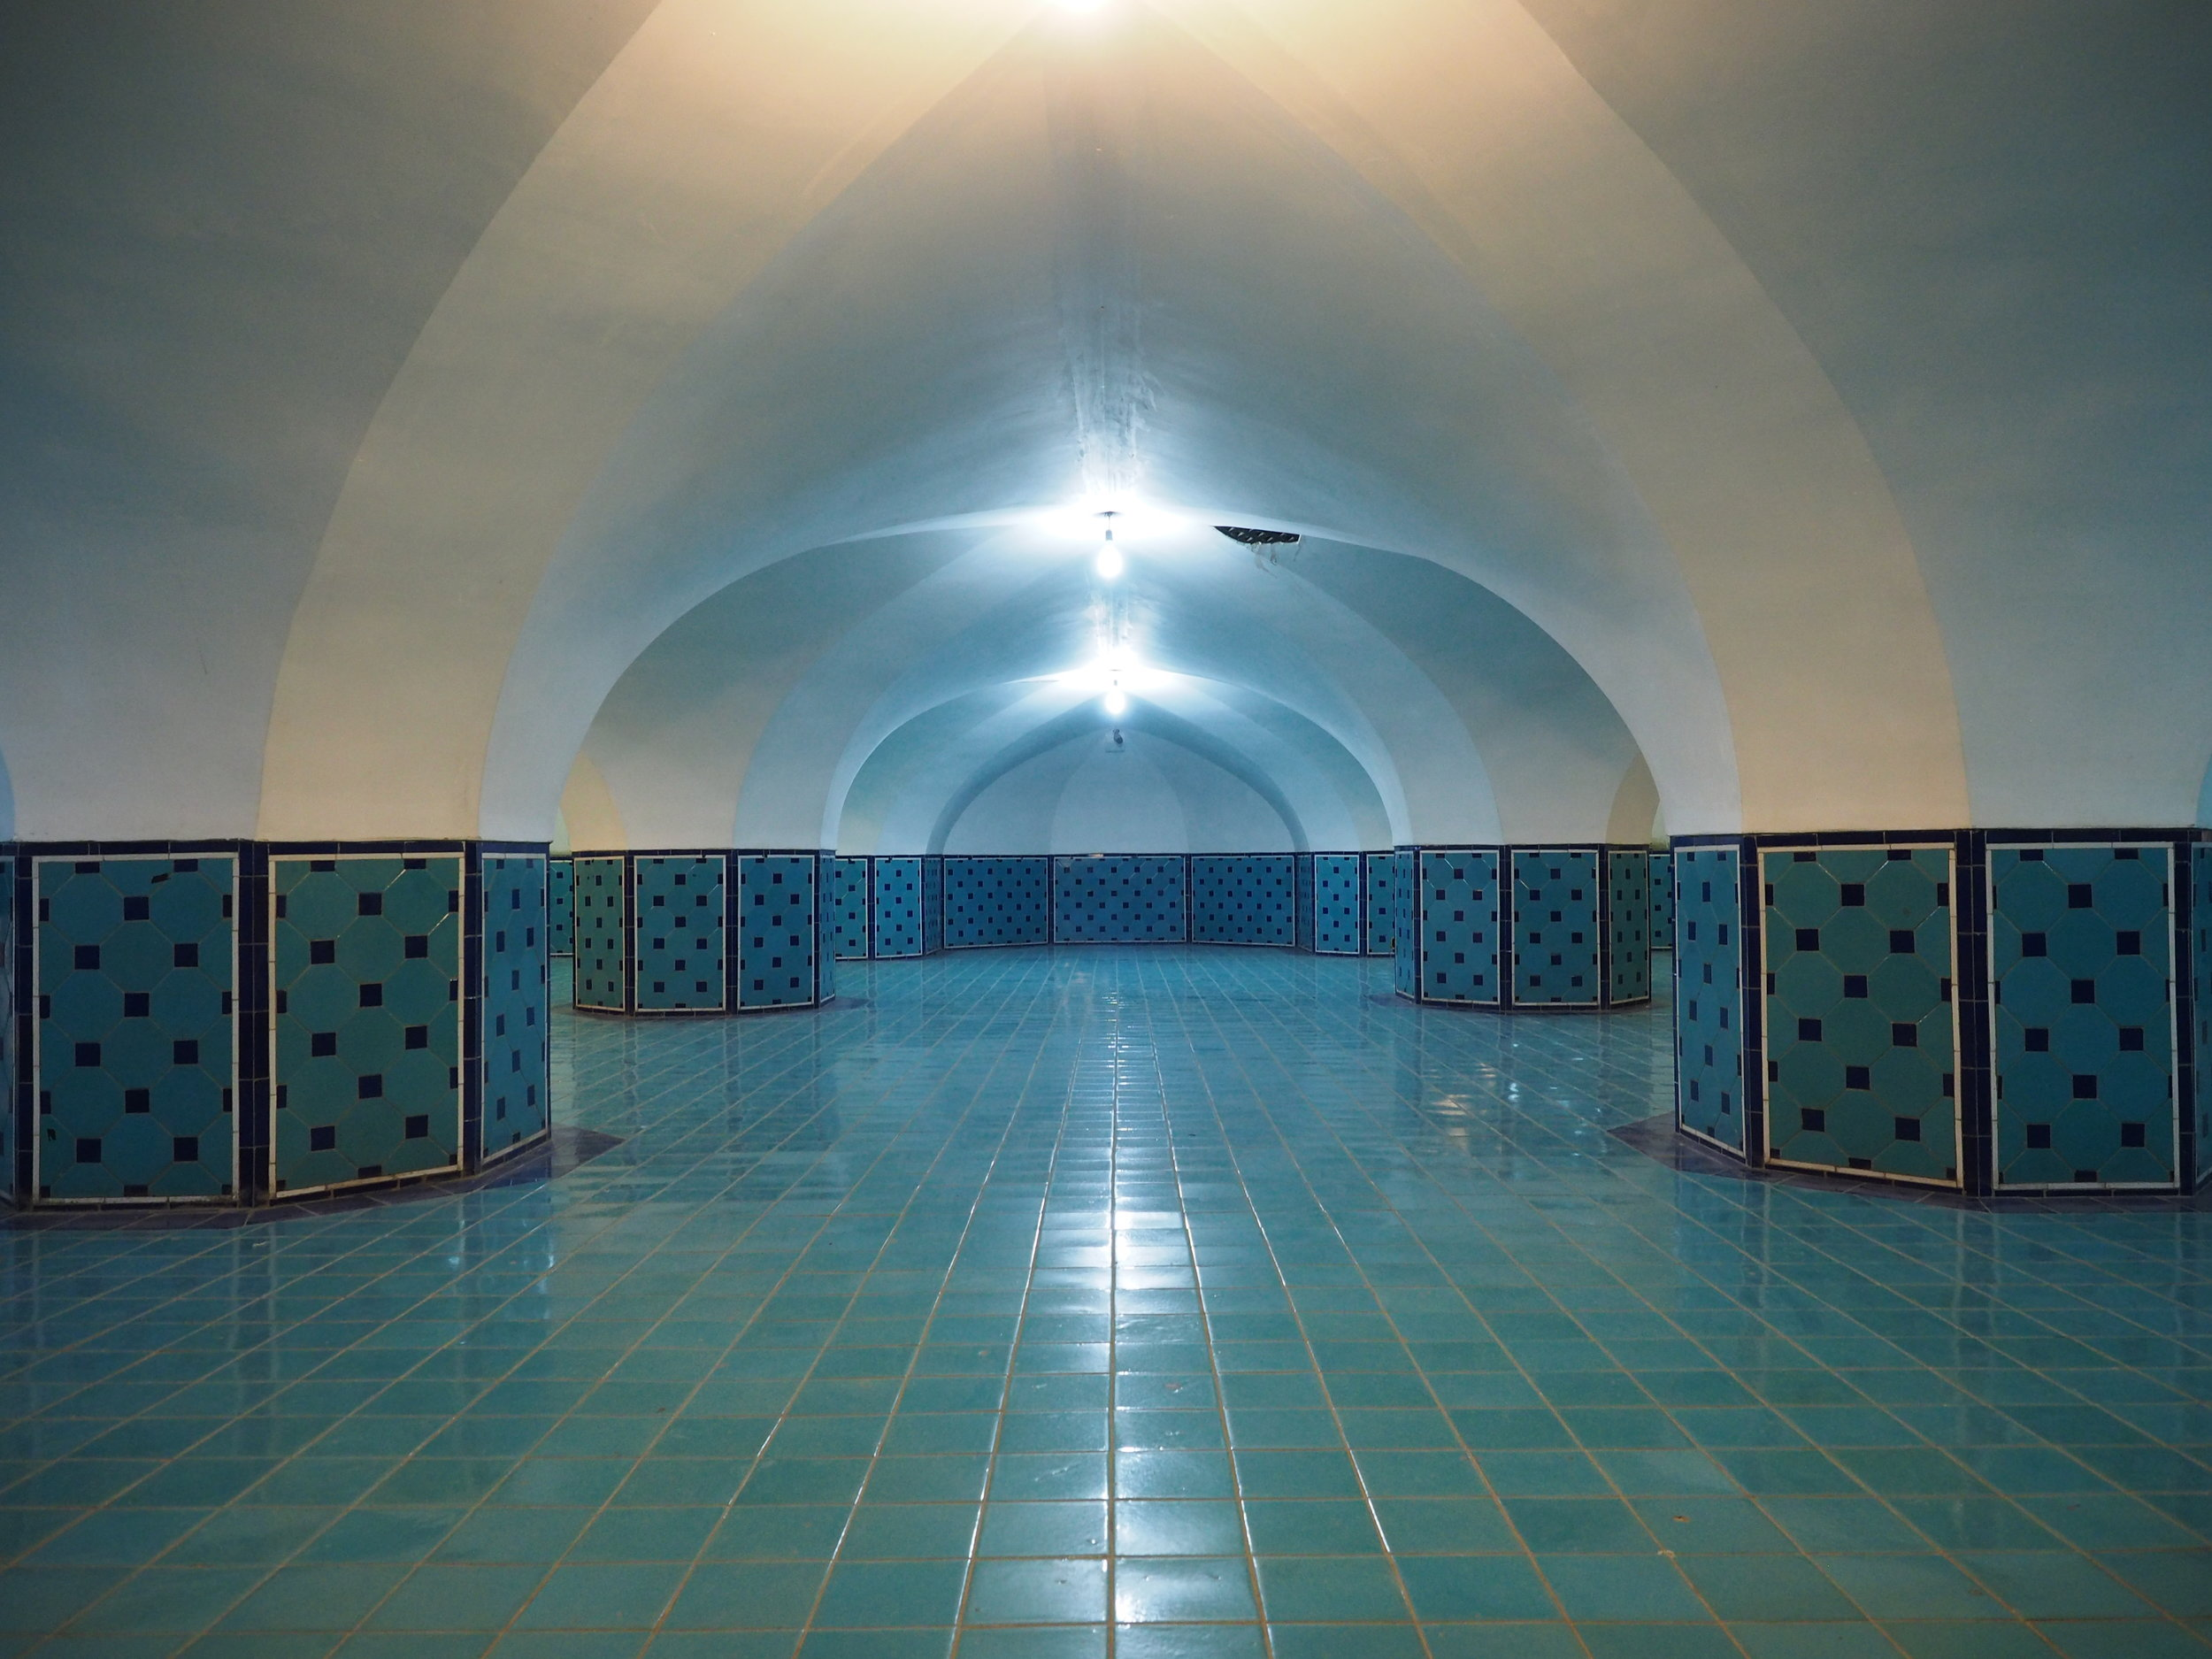 Is it a mosque or a swimming pool? Nobody knows. Well, it's a mosque actually.